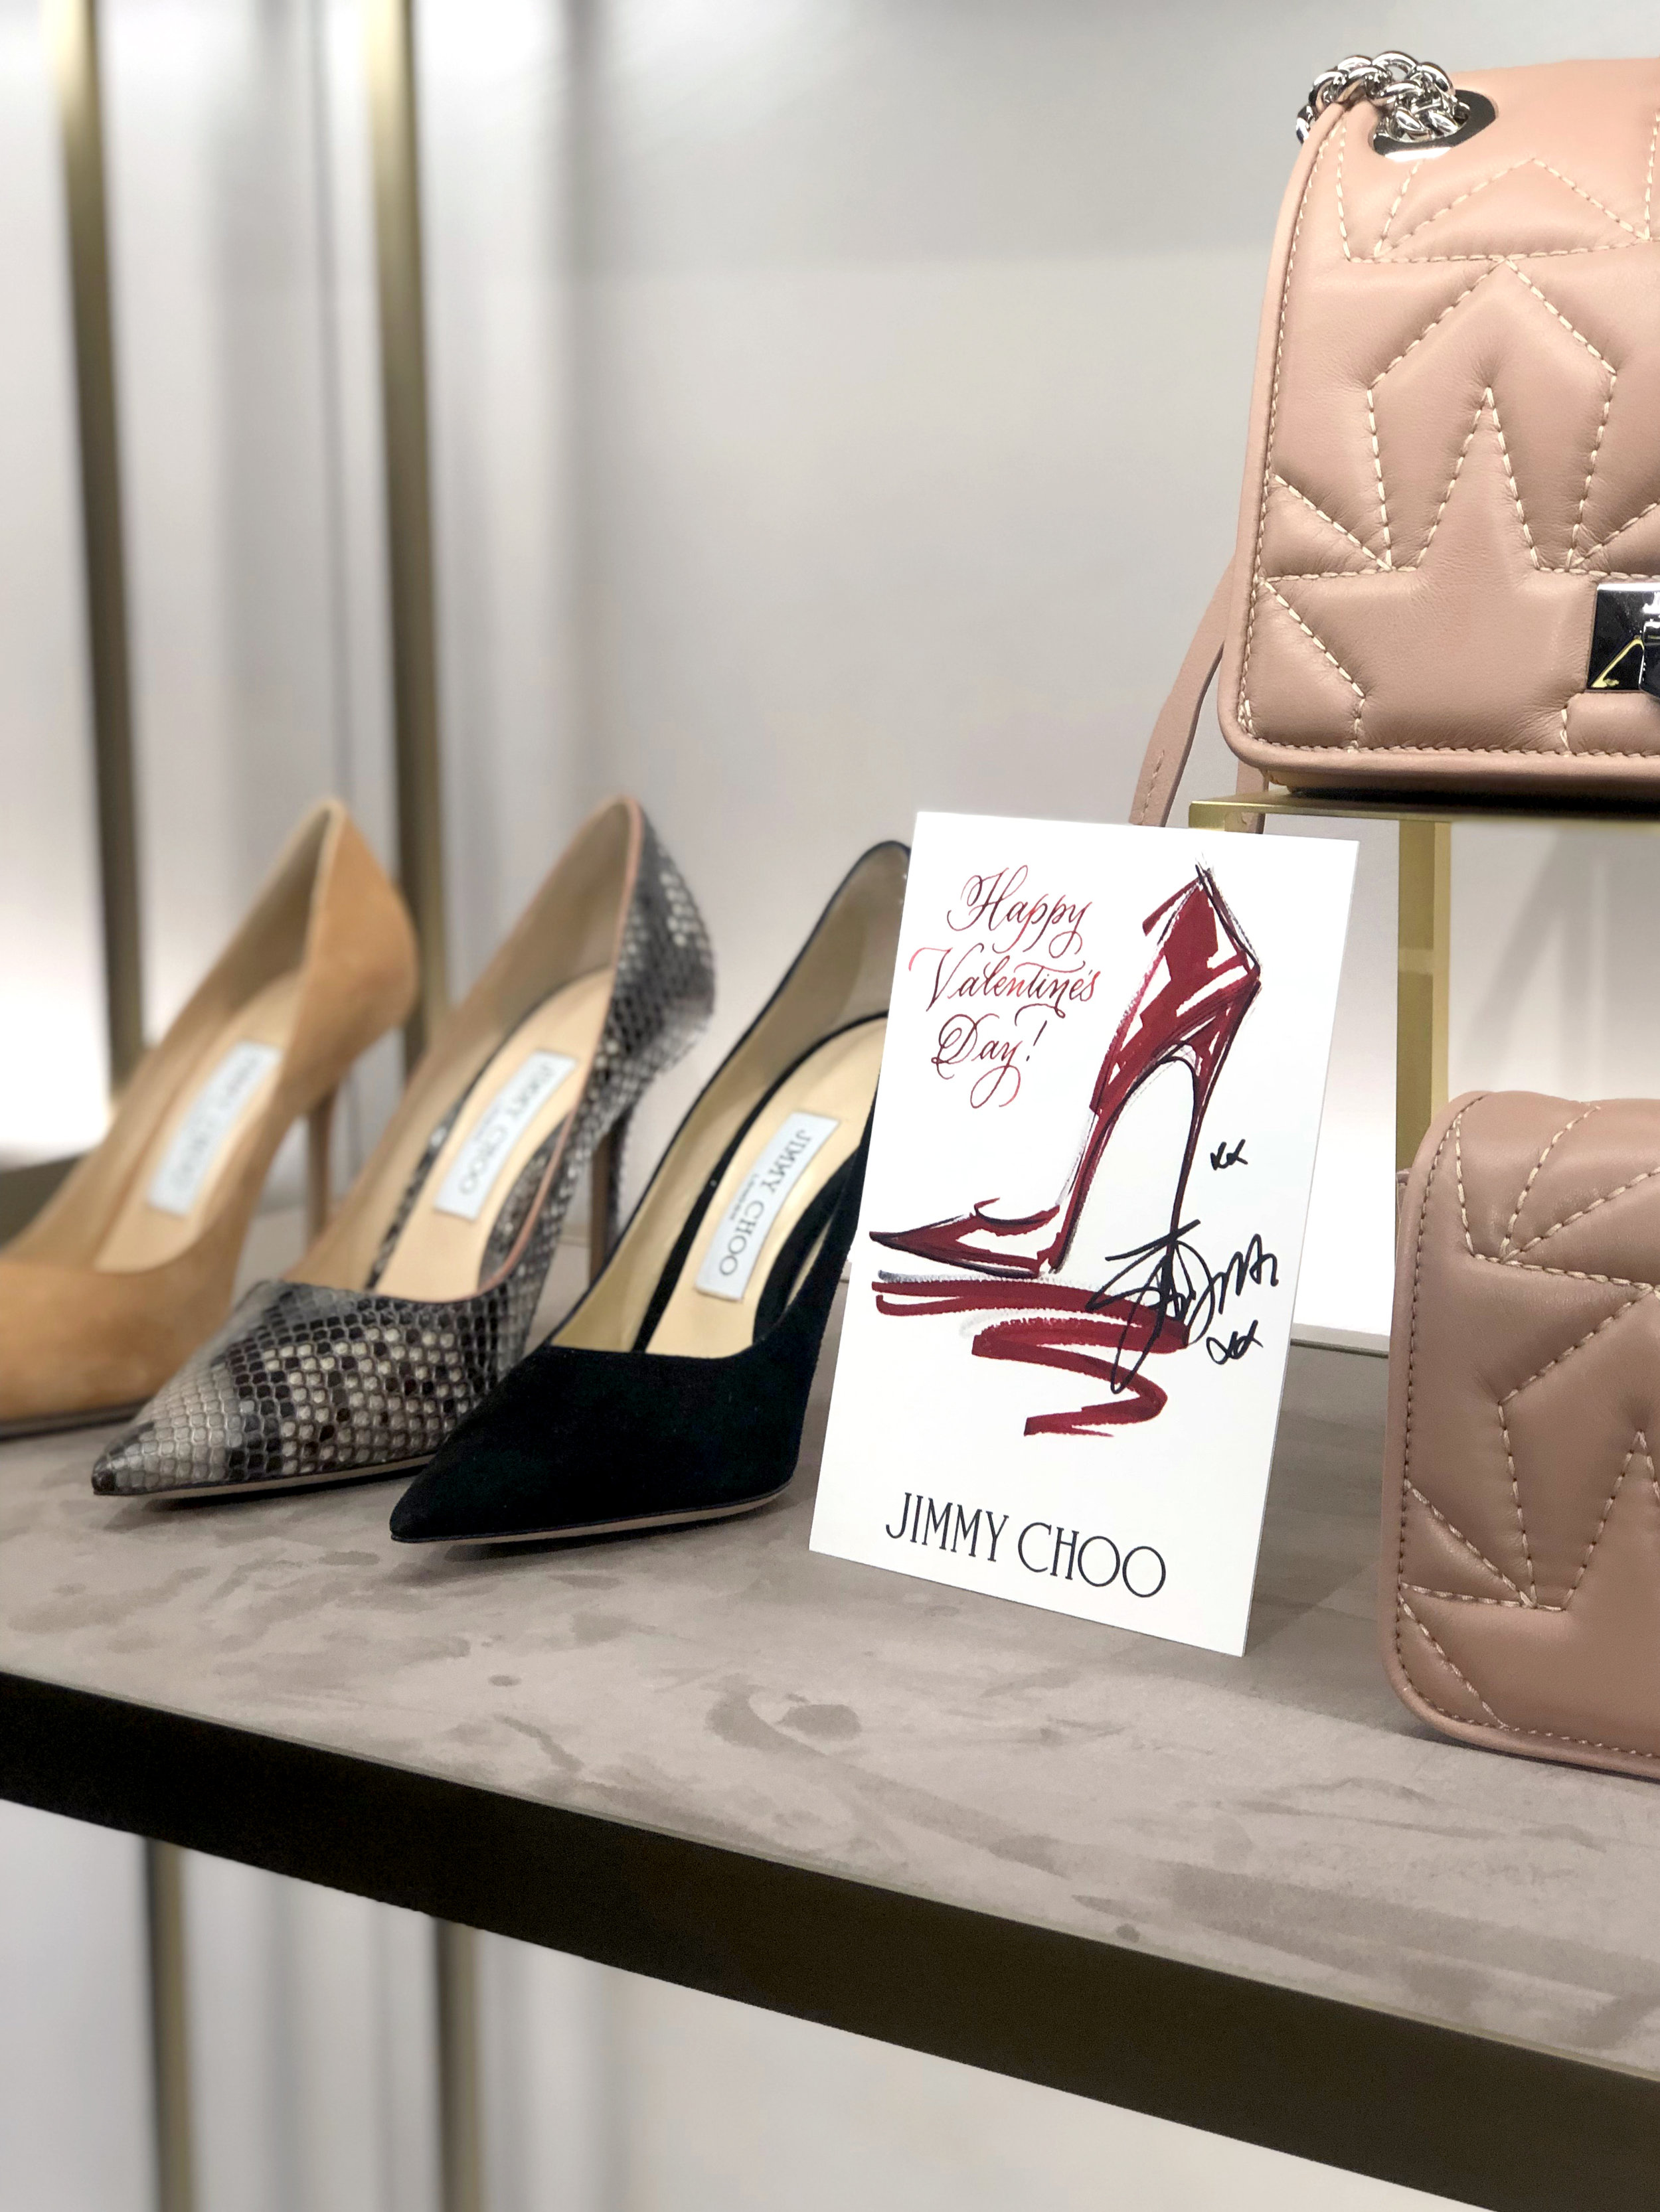 Jimmy Choo LOVE custom calligraphy event | by Chavelli www.chavelli.com